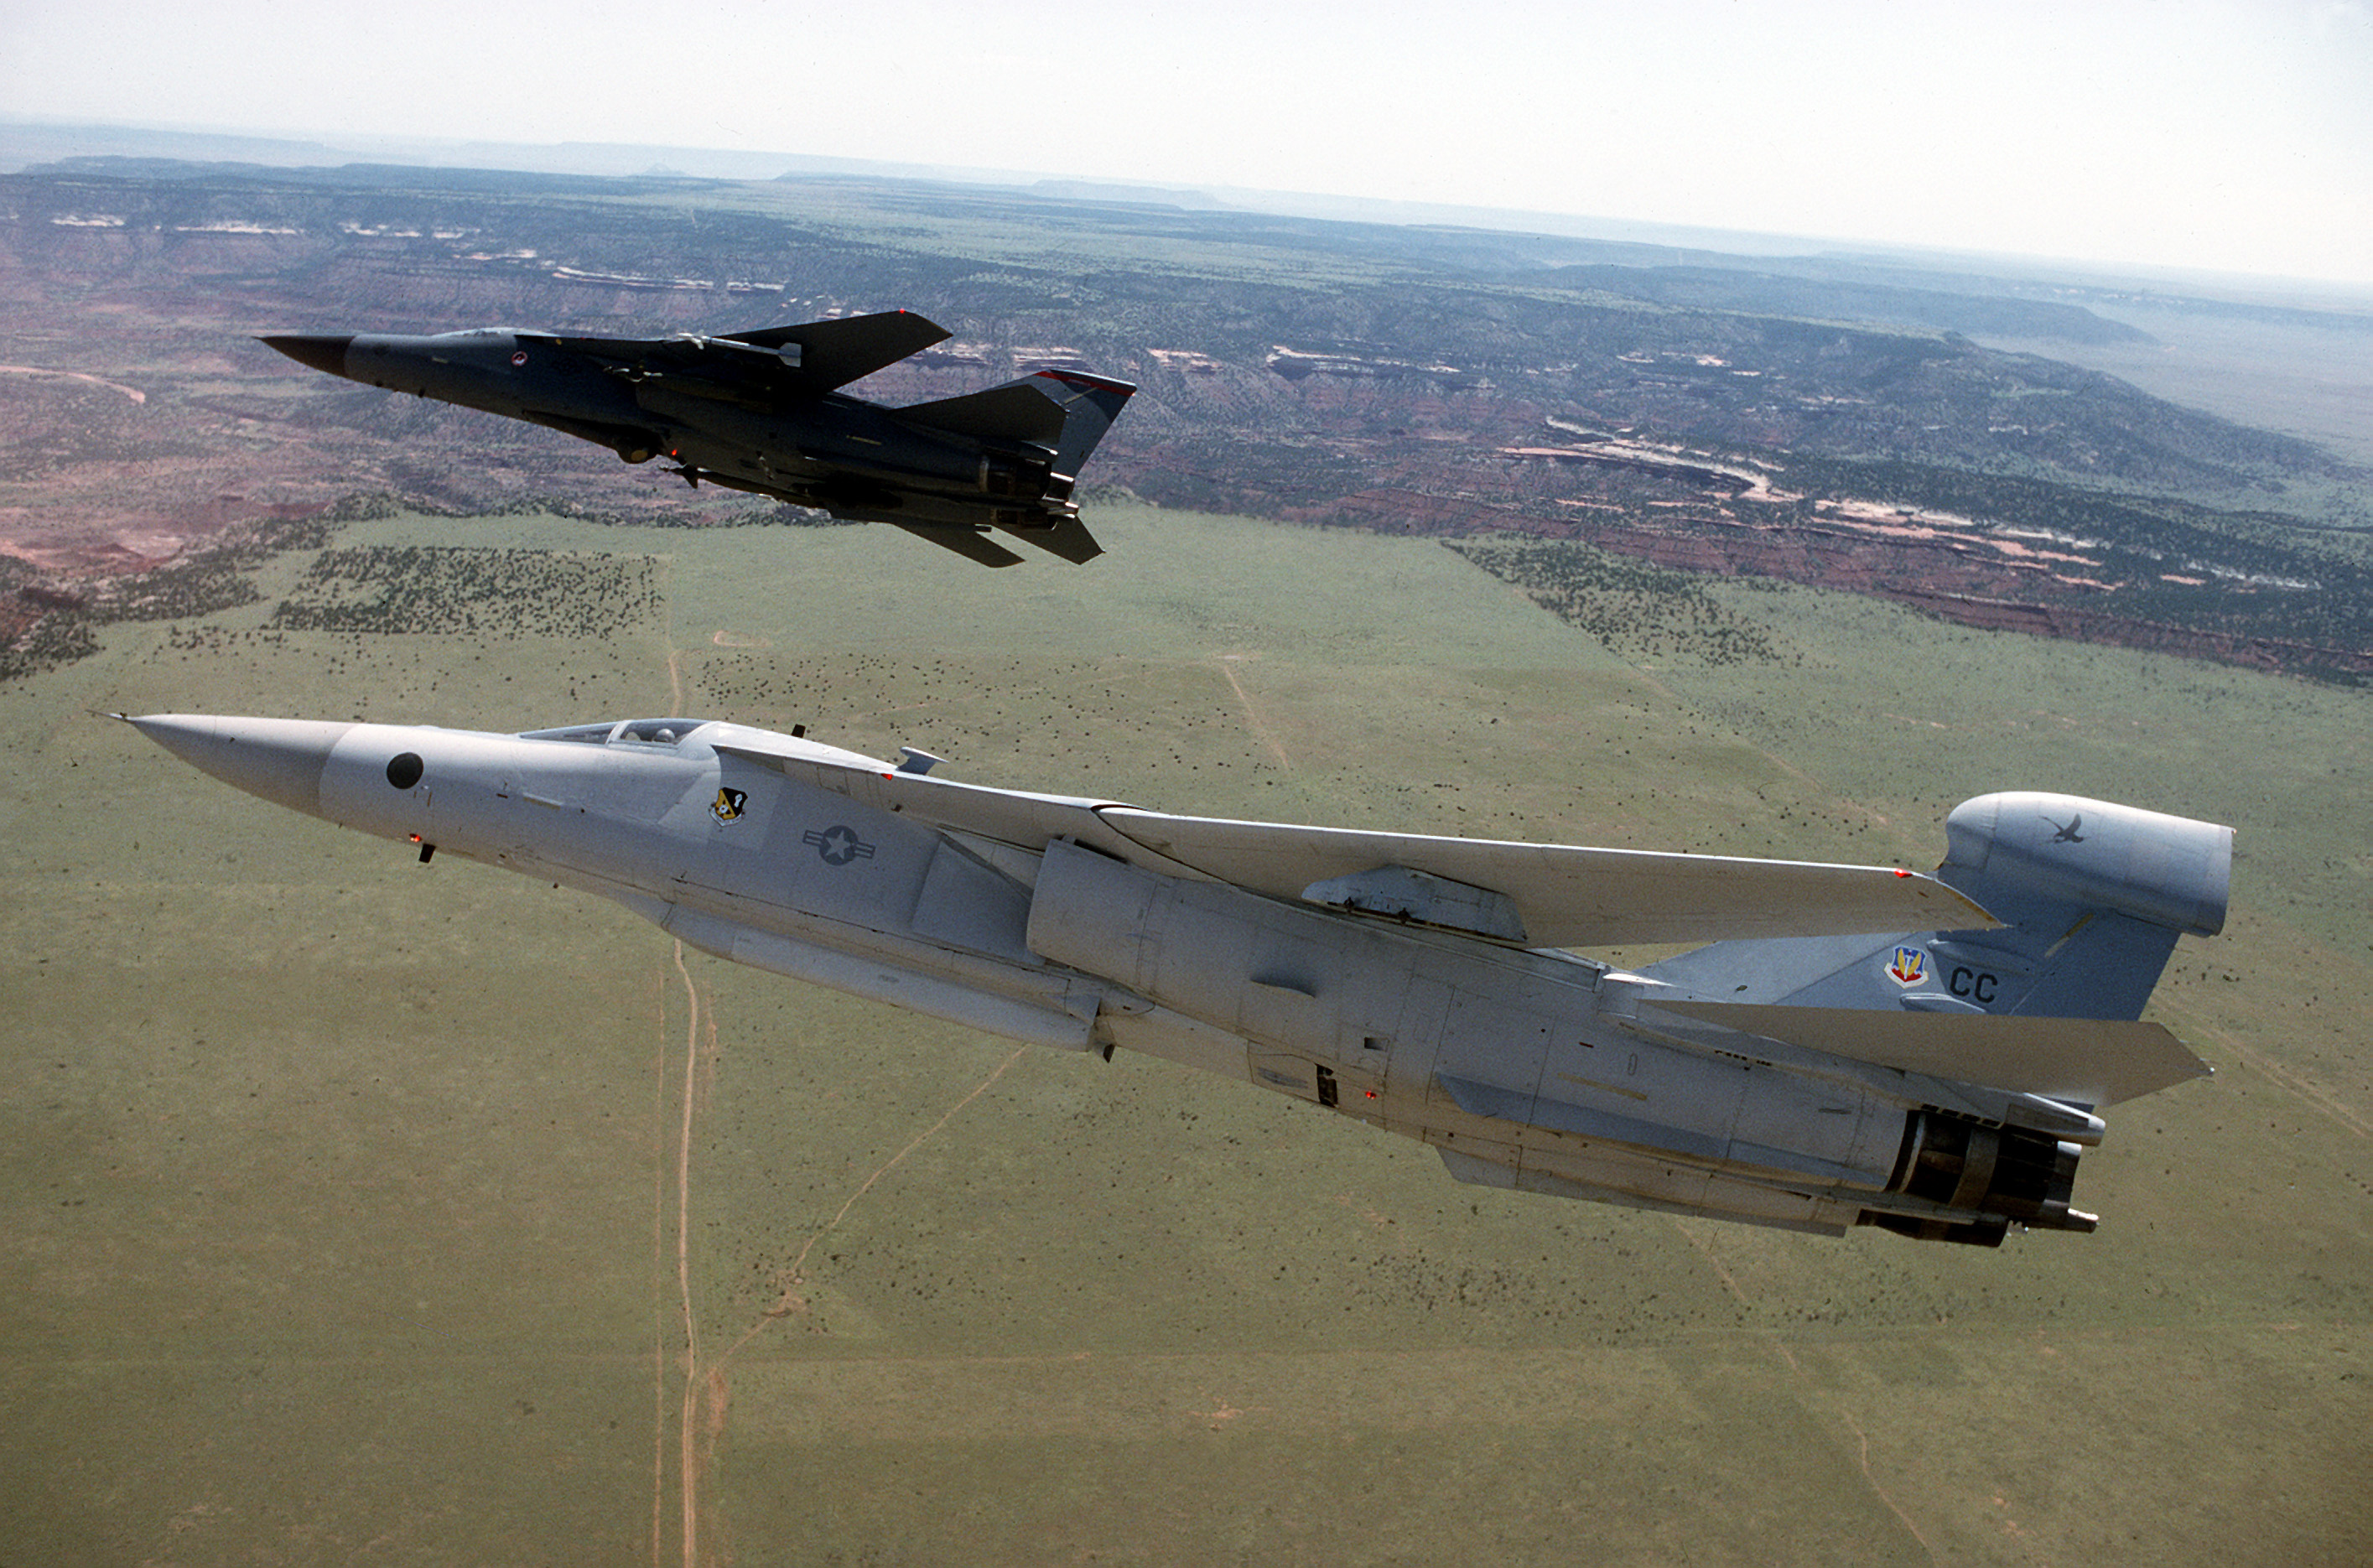 File:EF-111A and F-111F in flight.jpg - Wikimedia Commons